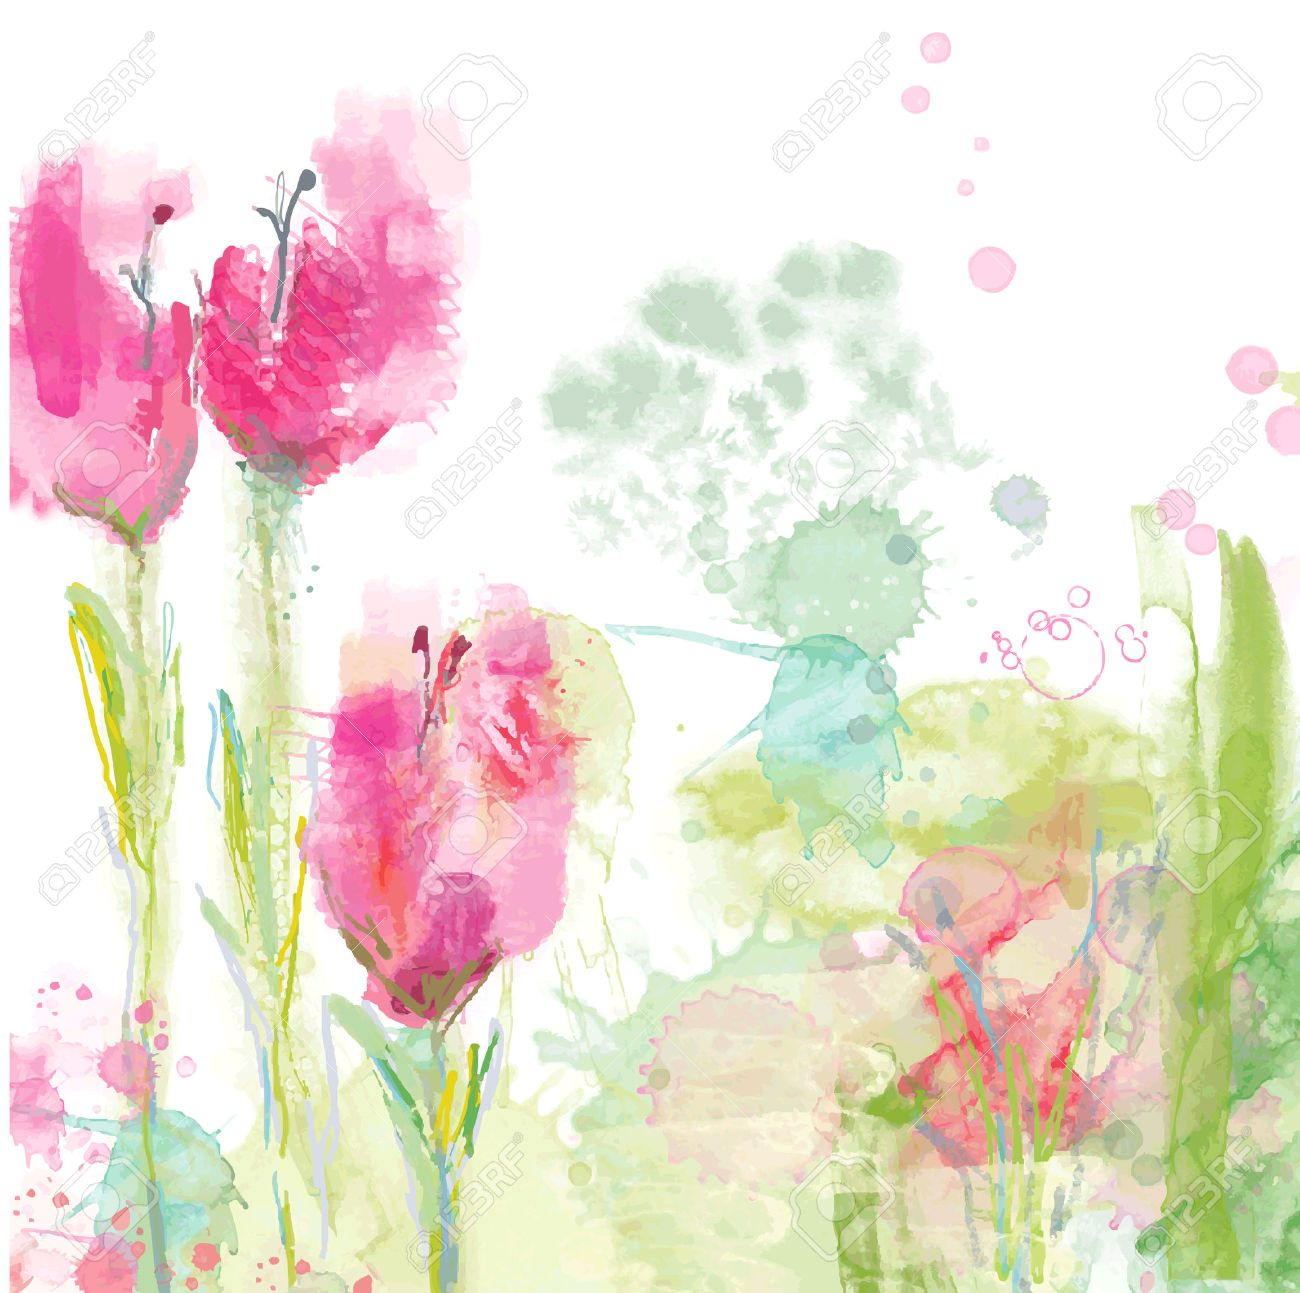 Tulips floral background - watercolor style - 37200898